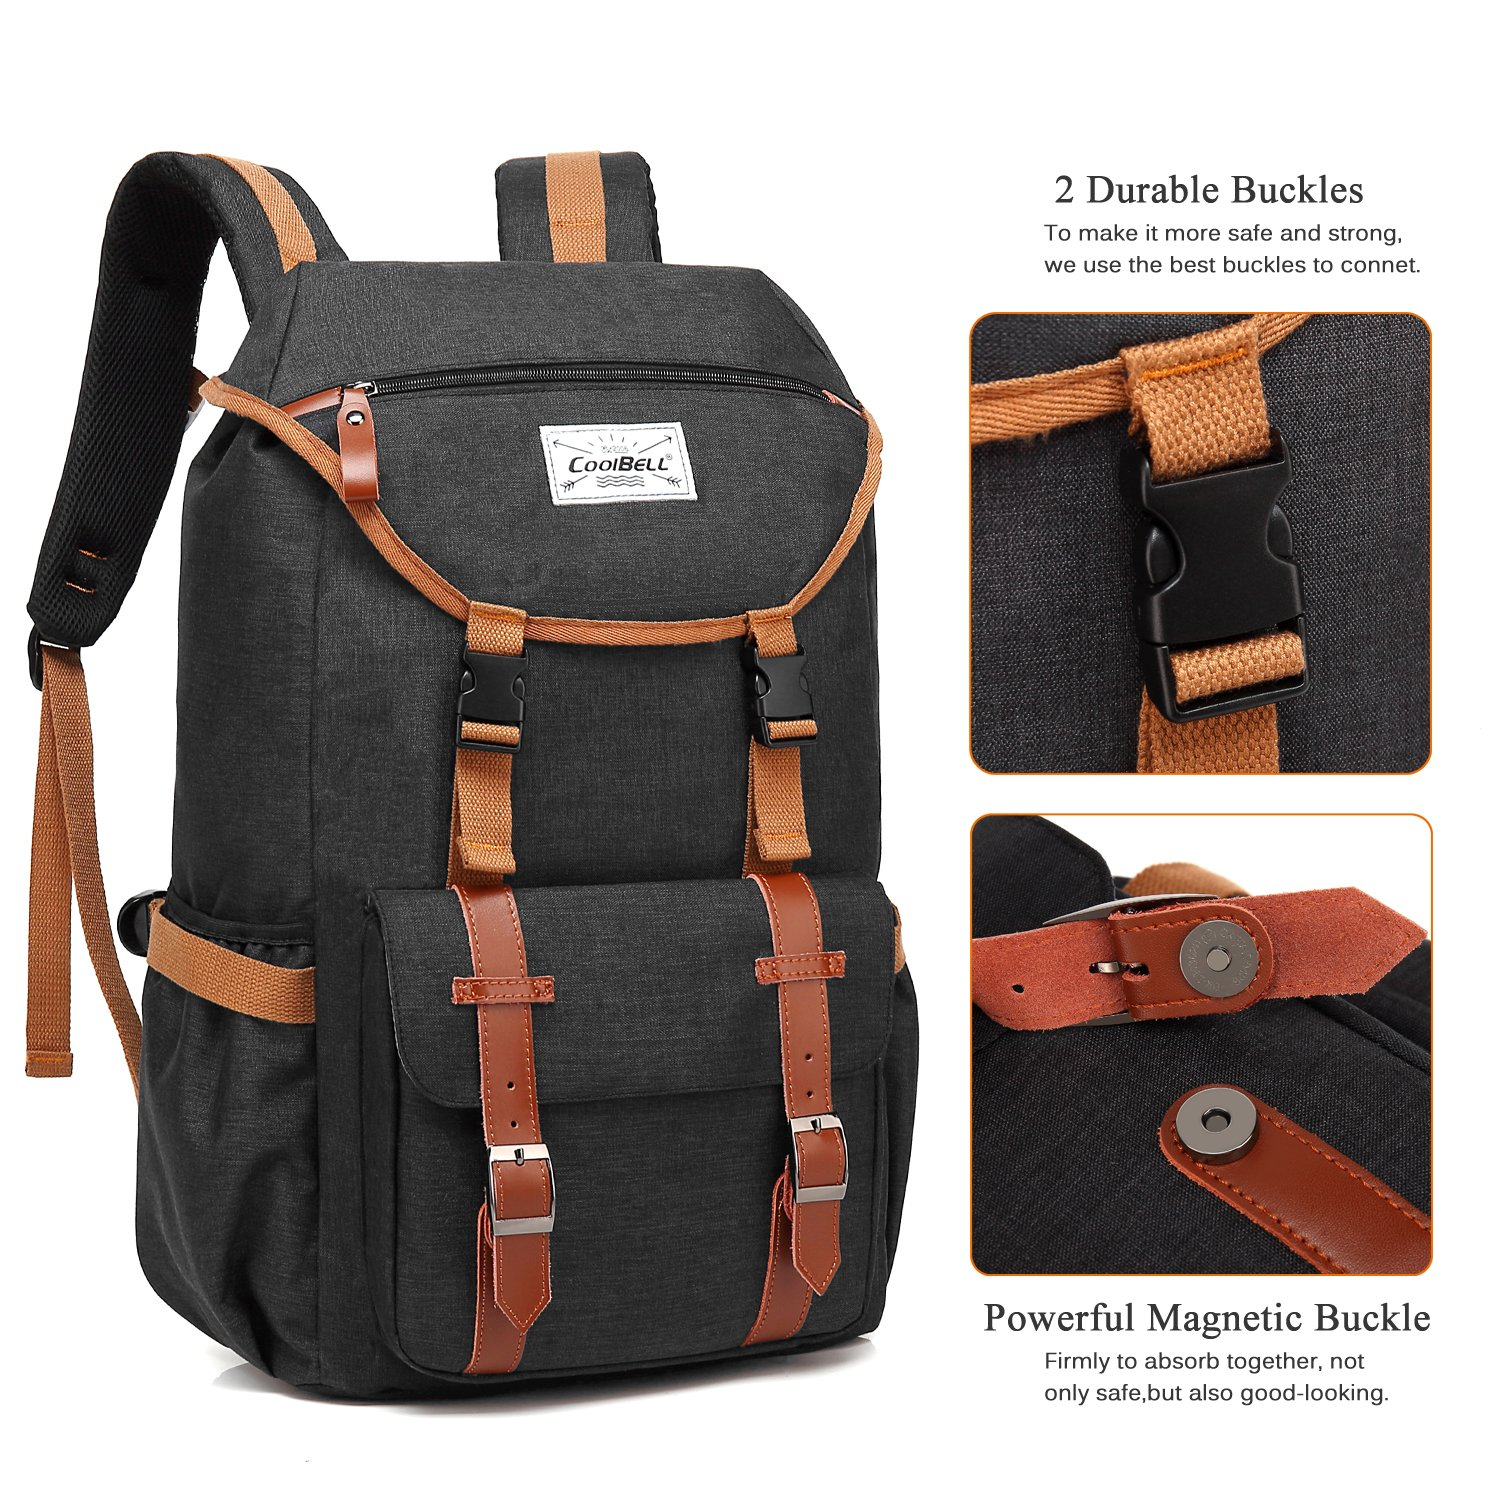 Travel Backpack CoolBELL 17.3 Inches Laptop Backpack Leisure Outdoor Rucksack Hiking Knapsack School Daypack Multi-functional Business Bag For School/College/Men/Women (38L, Black) by CoolBELL (Image #4)